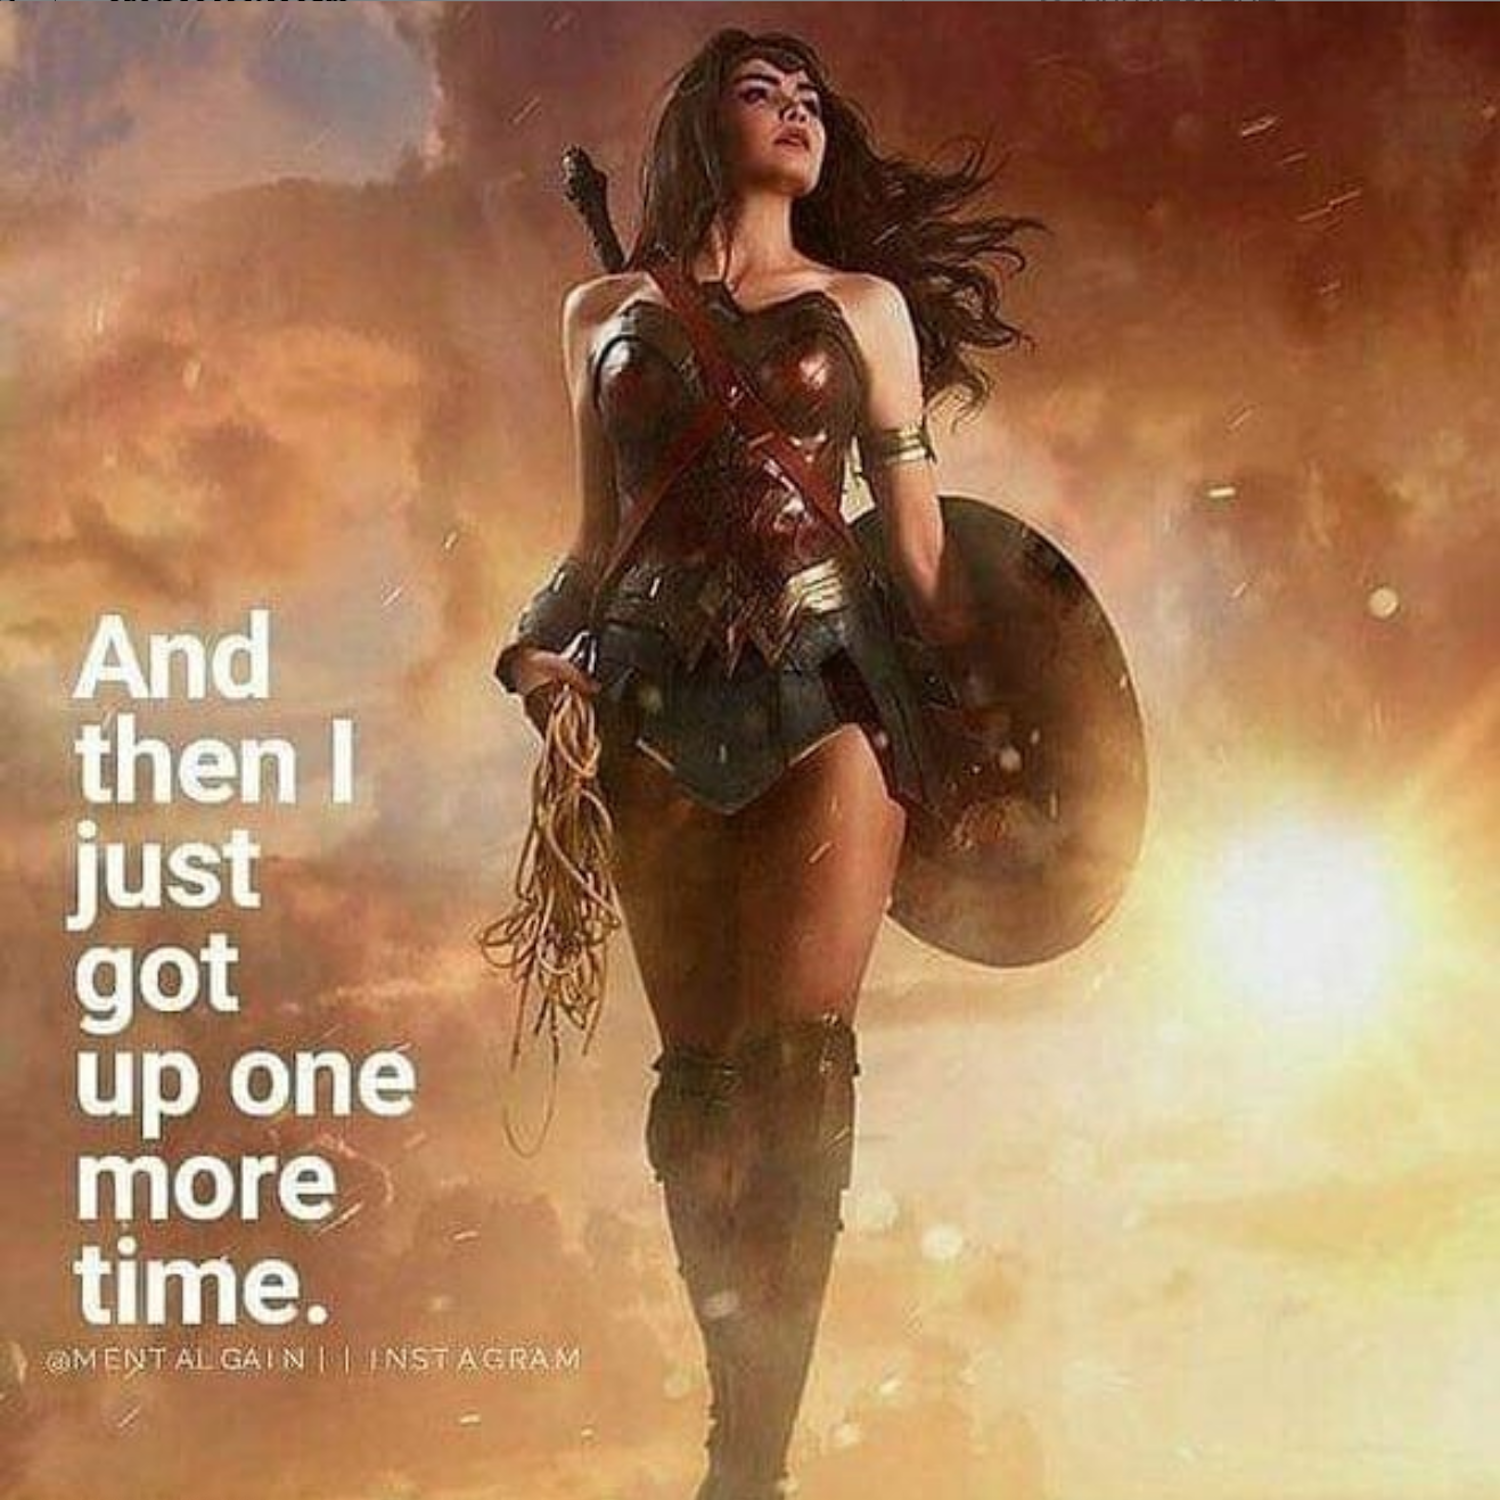 Get Up One More Time Wonder Woman Quotes Woman Quotes Wonder Woman